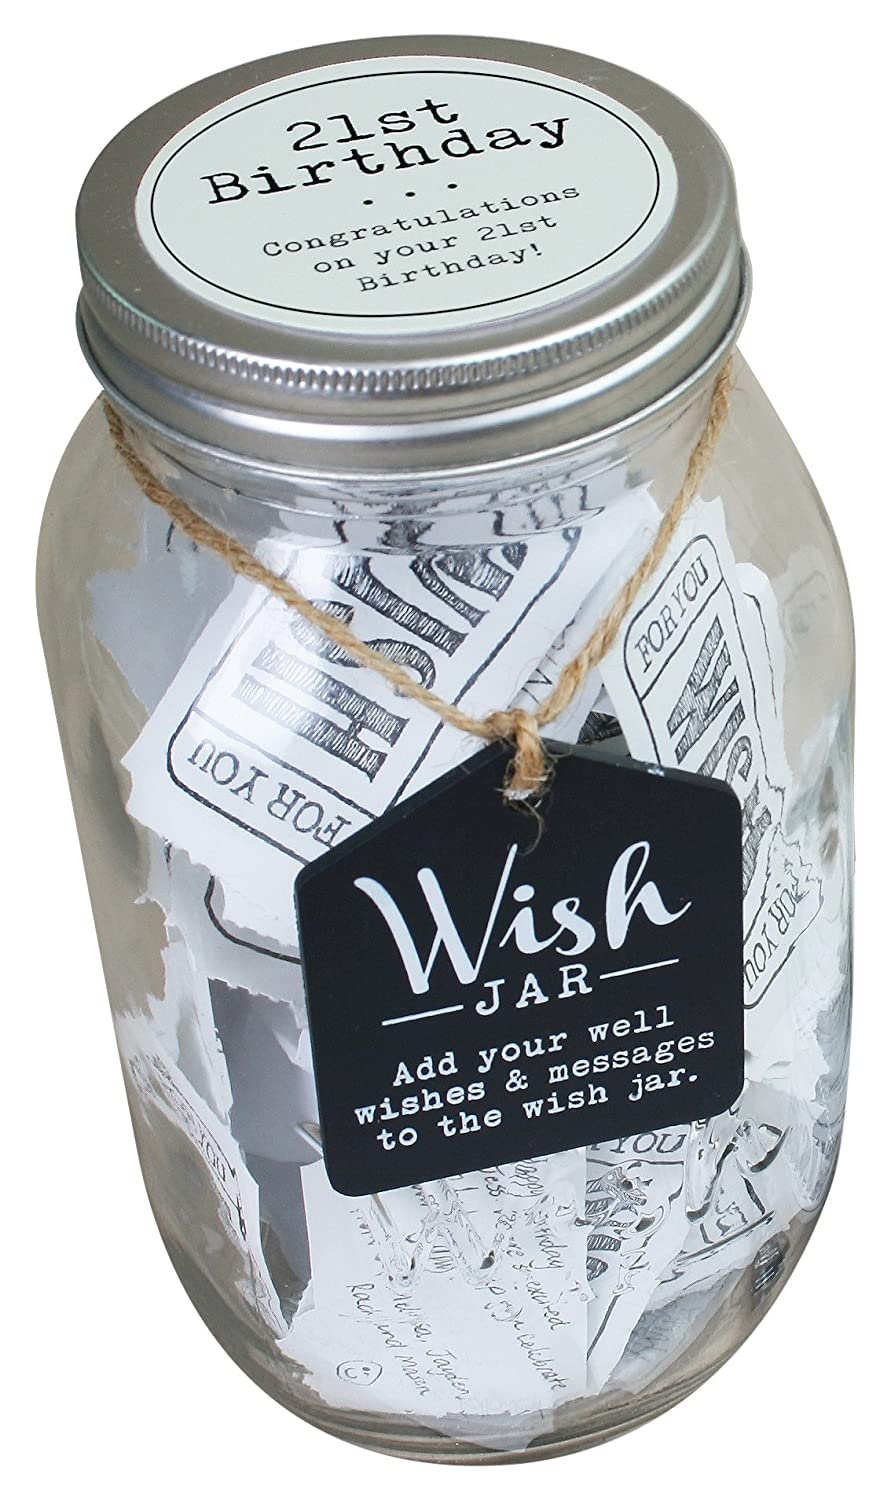 Top Shelf 21st Birthday Wish Jar Unique Gift Ideas For Daughter Son Sister And Brother Memorable Gifts Men Women Kit Comes With 100 Tickets